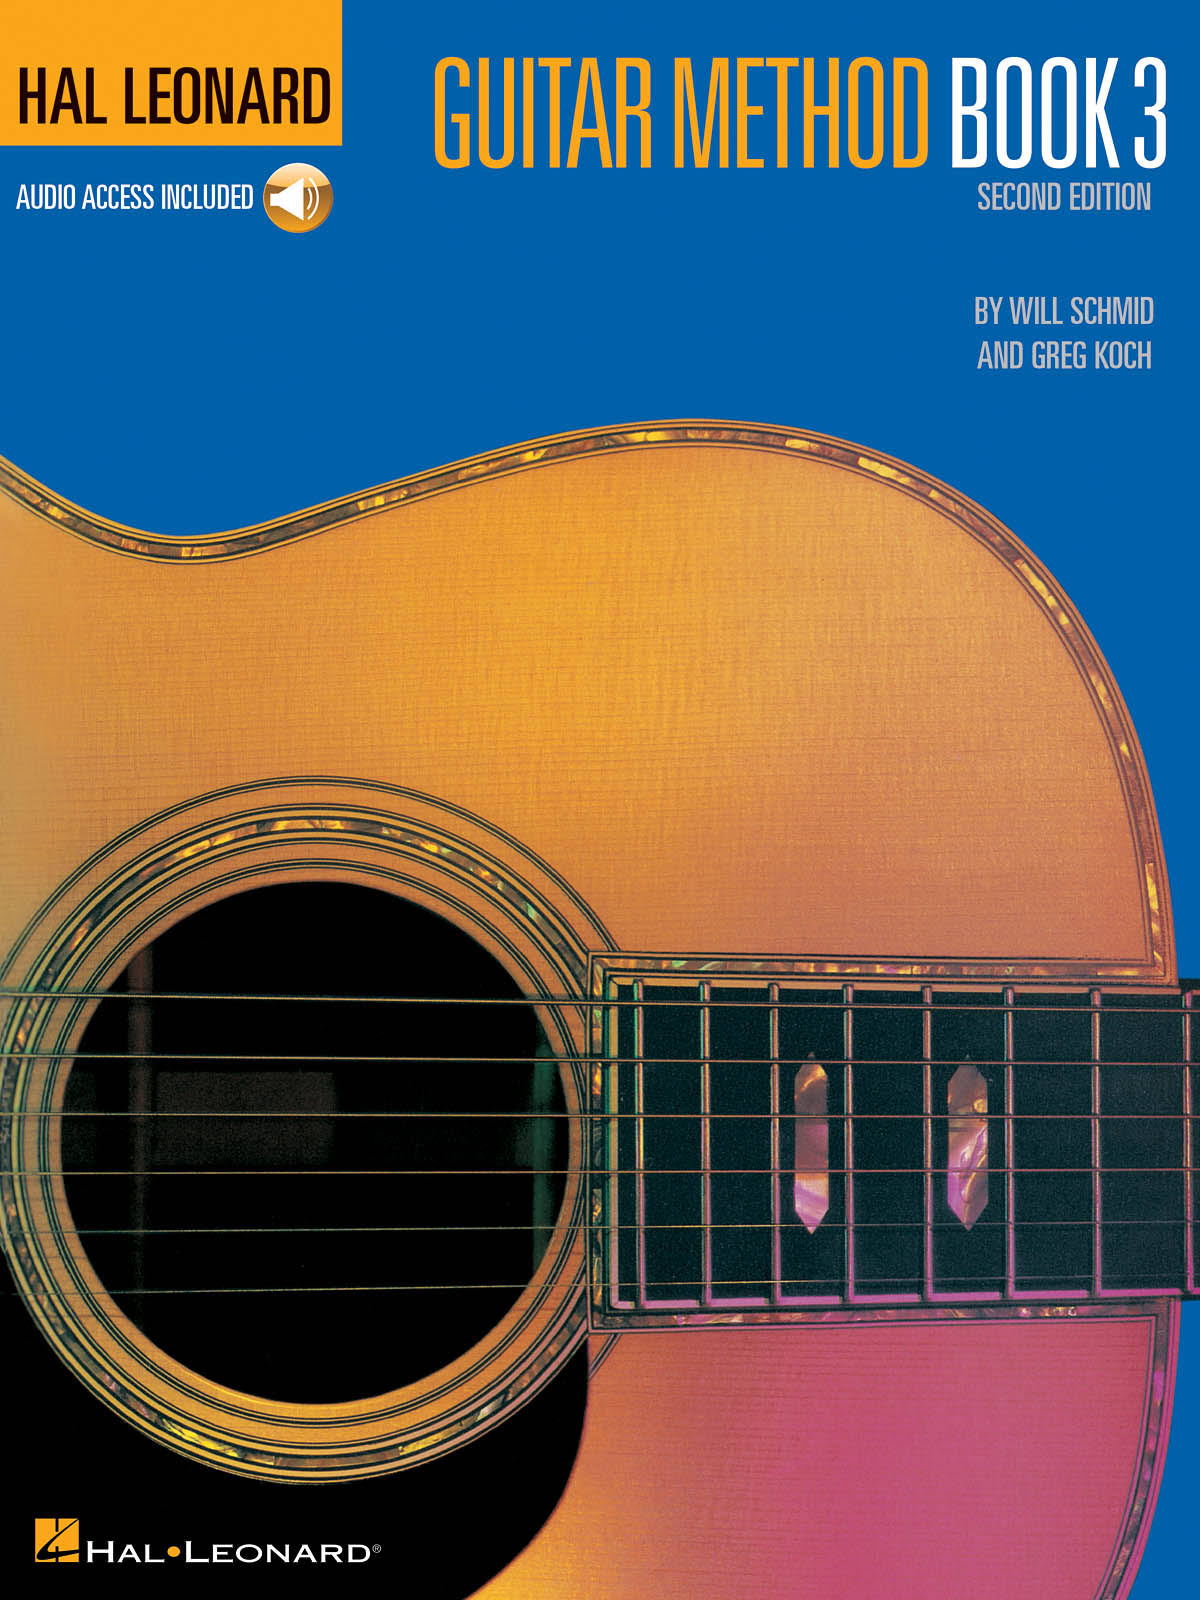 Guitar Method Book 3 - Hal Leonard